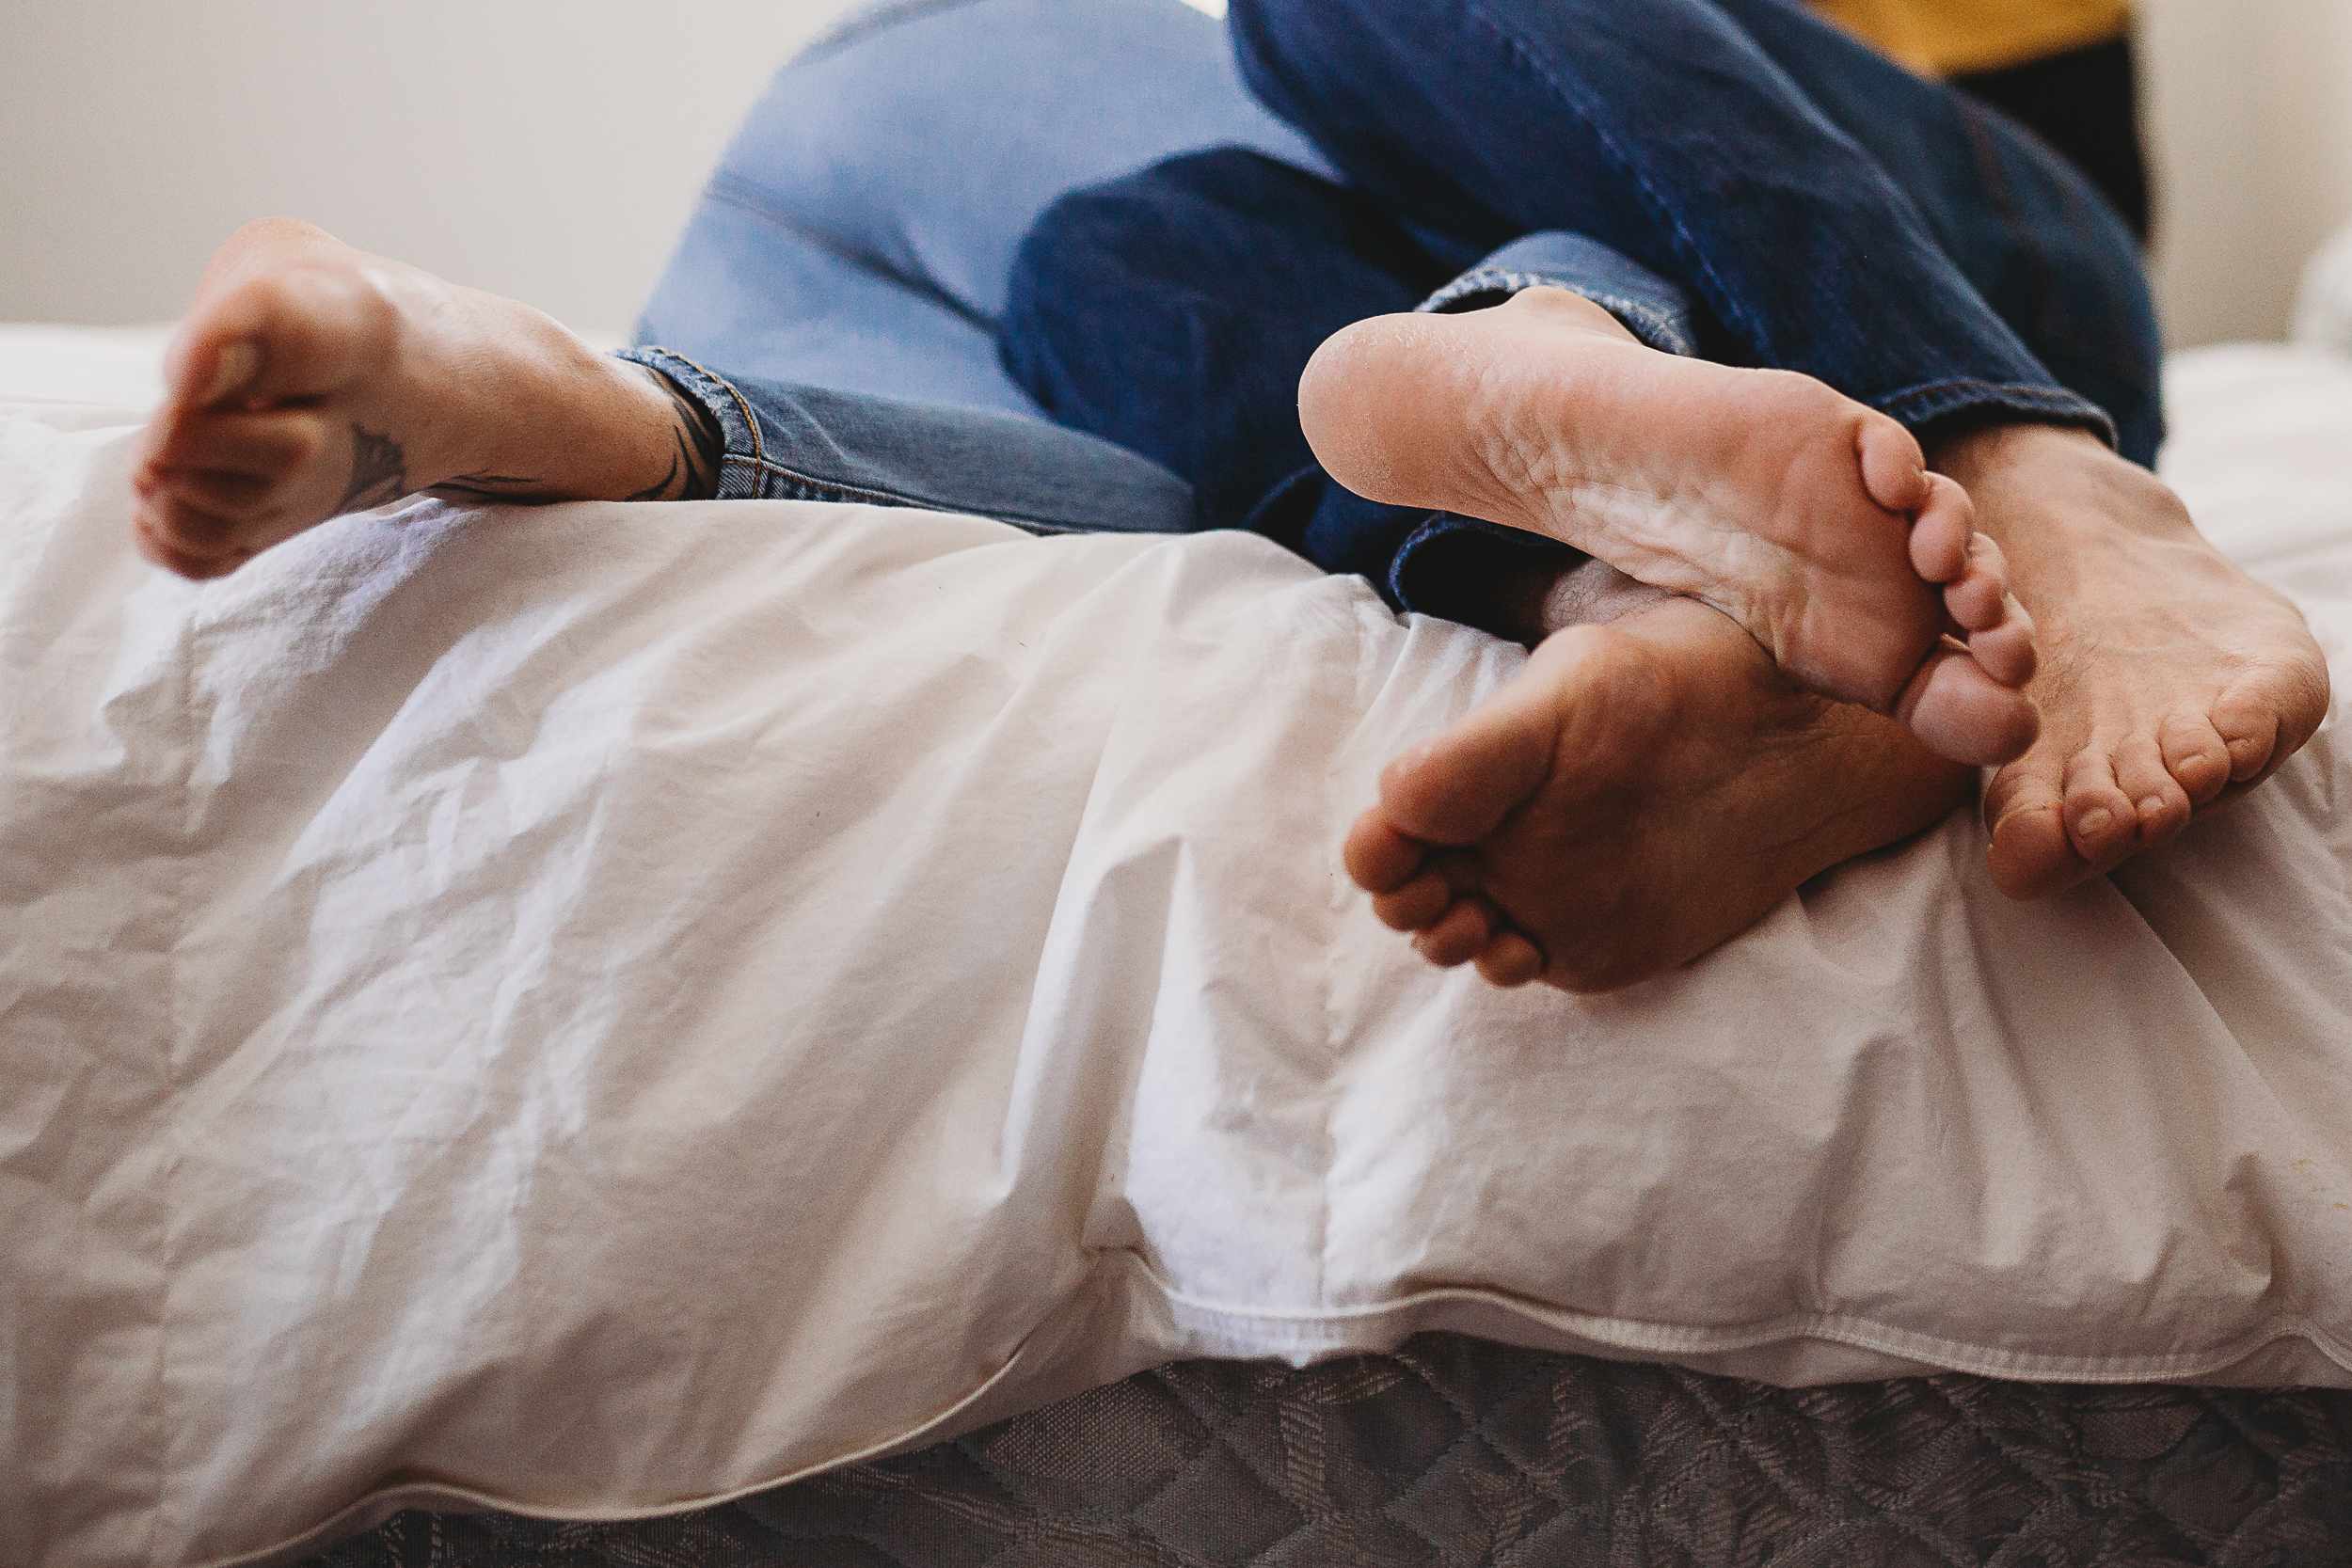 Couple lay on bed and there feet are intertwined during in-home engagement photo session by RaeEllen Photography in New Hampshire